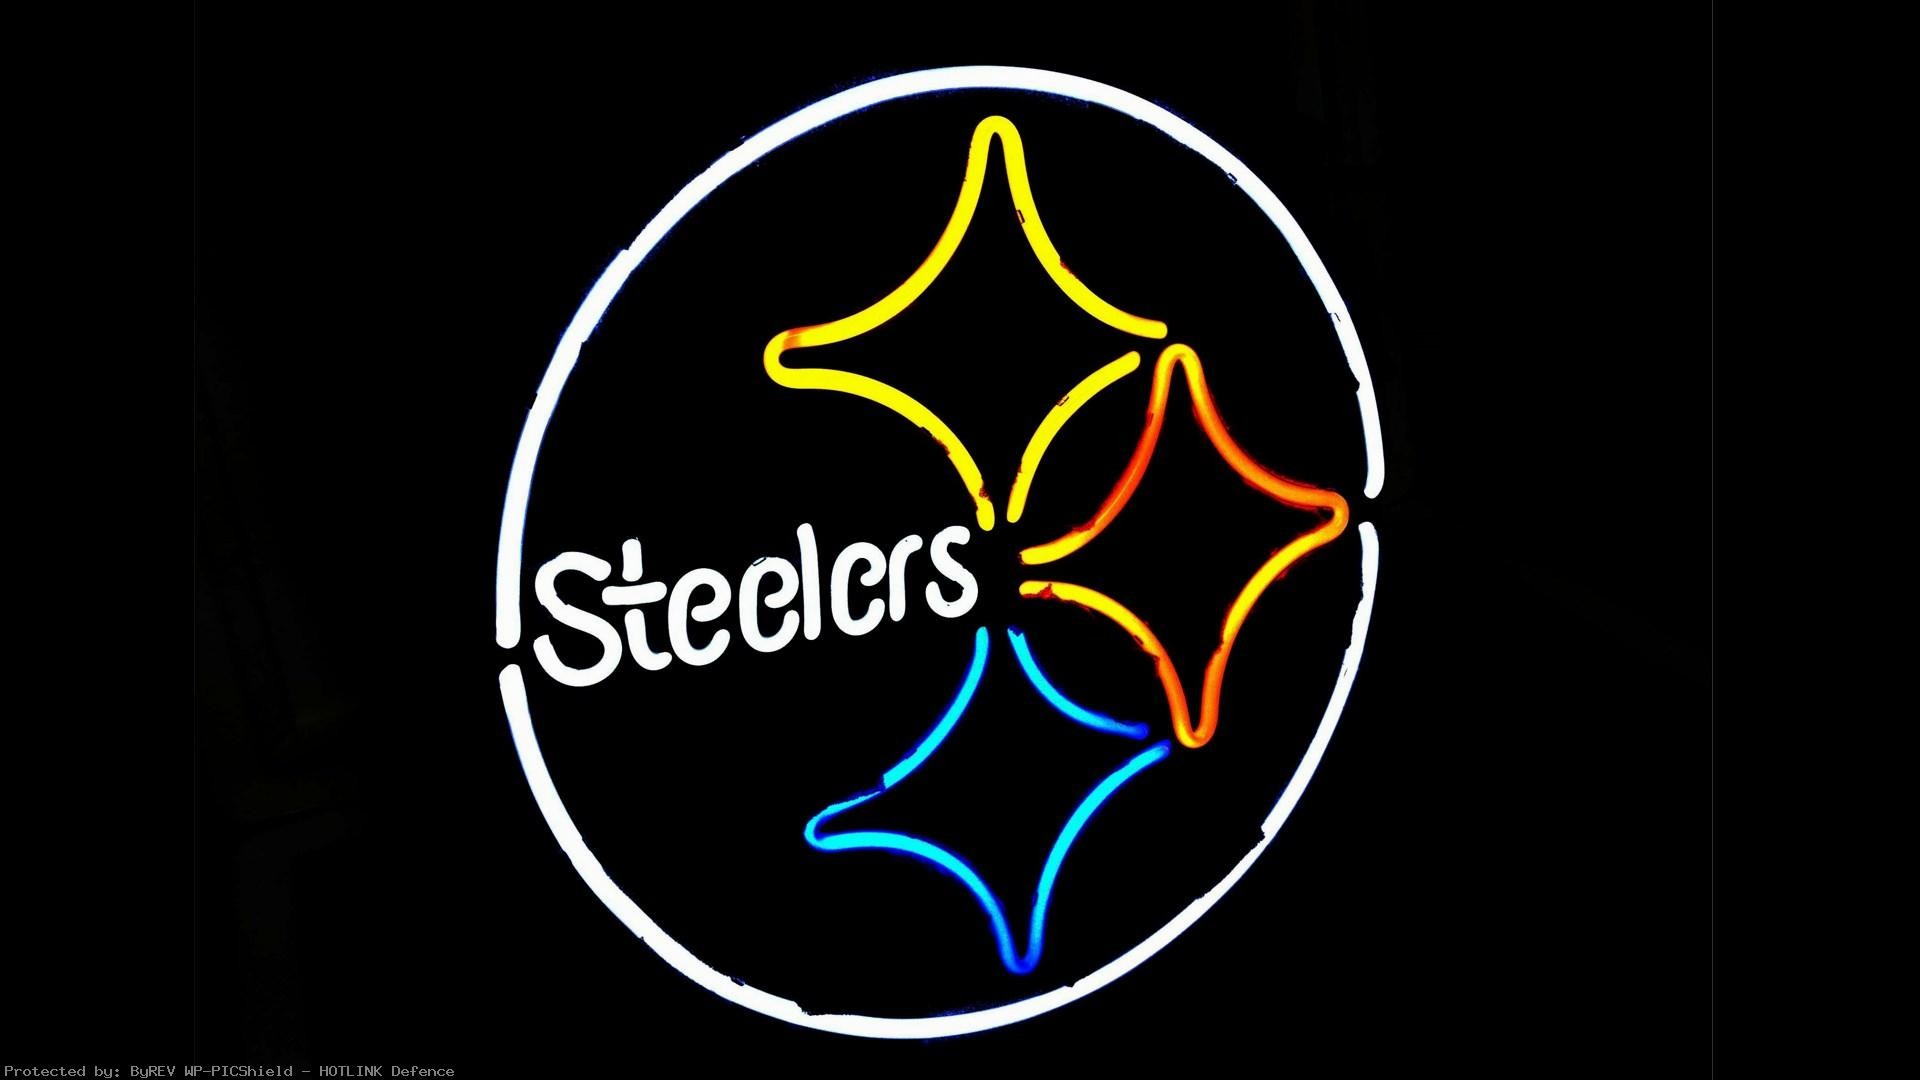 pittsburgh-steelers-1080p-high-quality-pittsburgh-steelers-category-